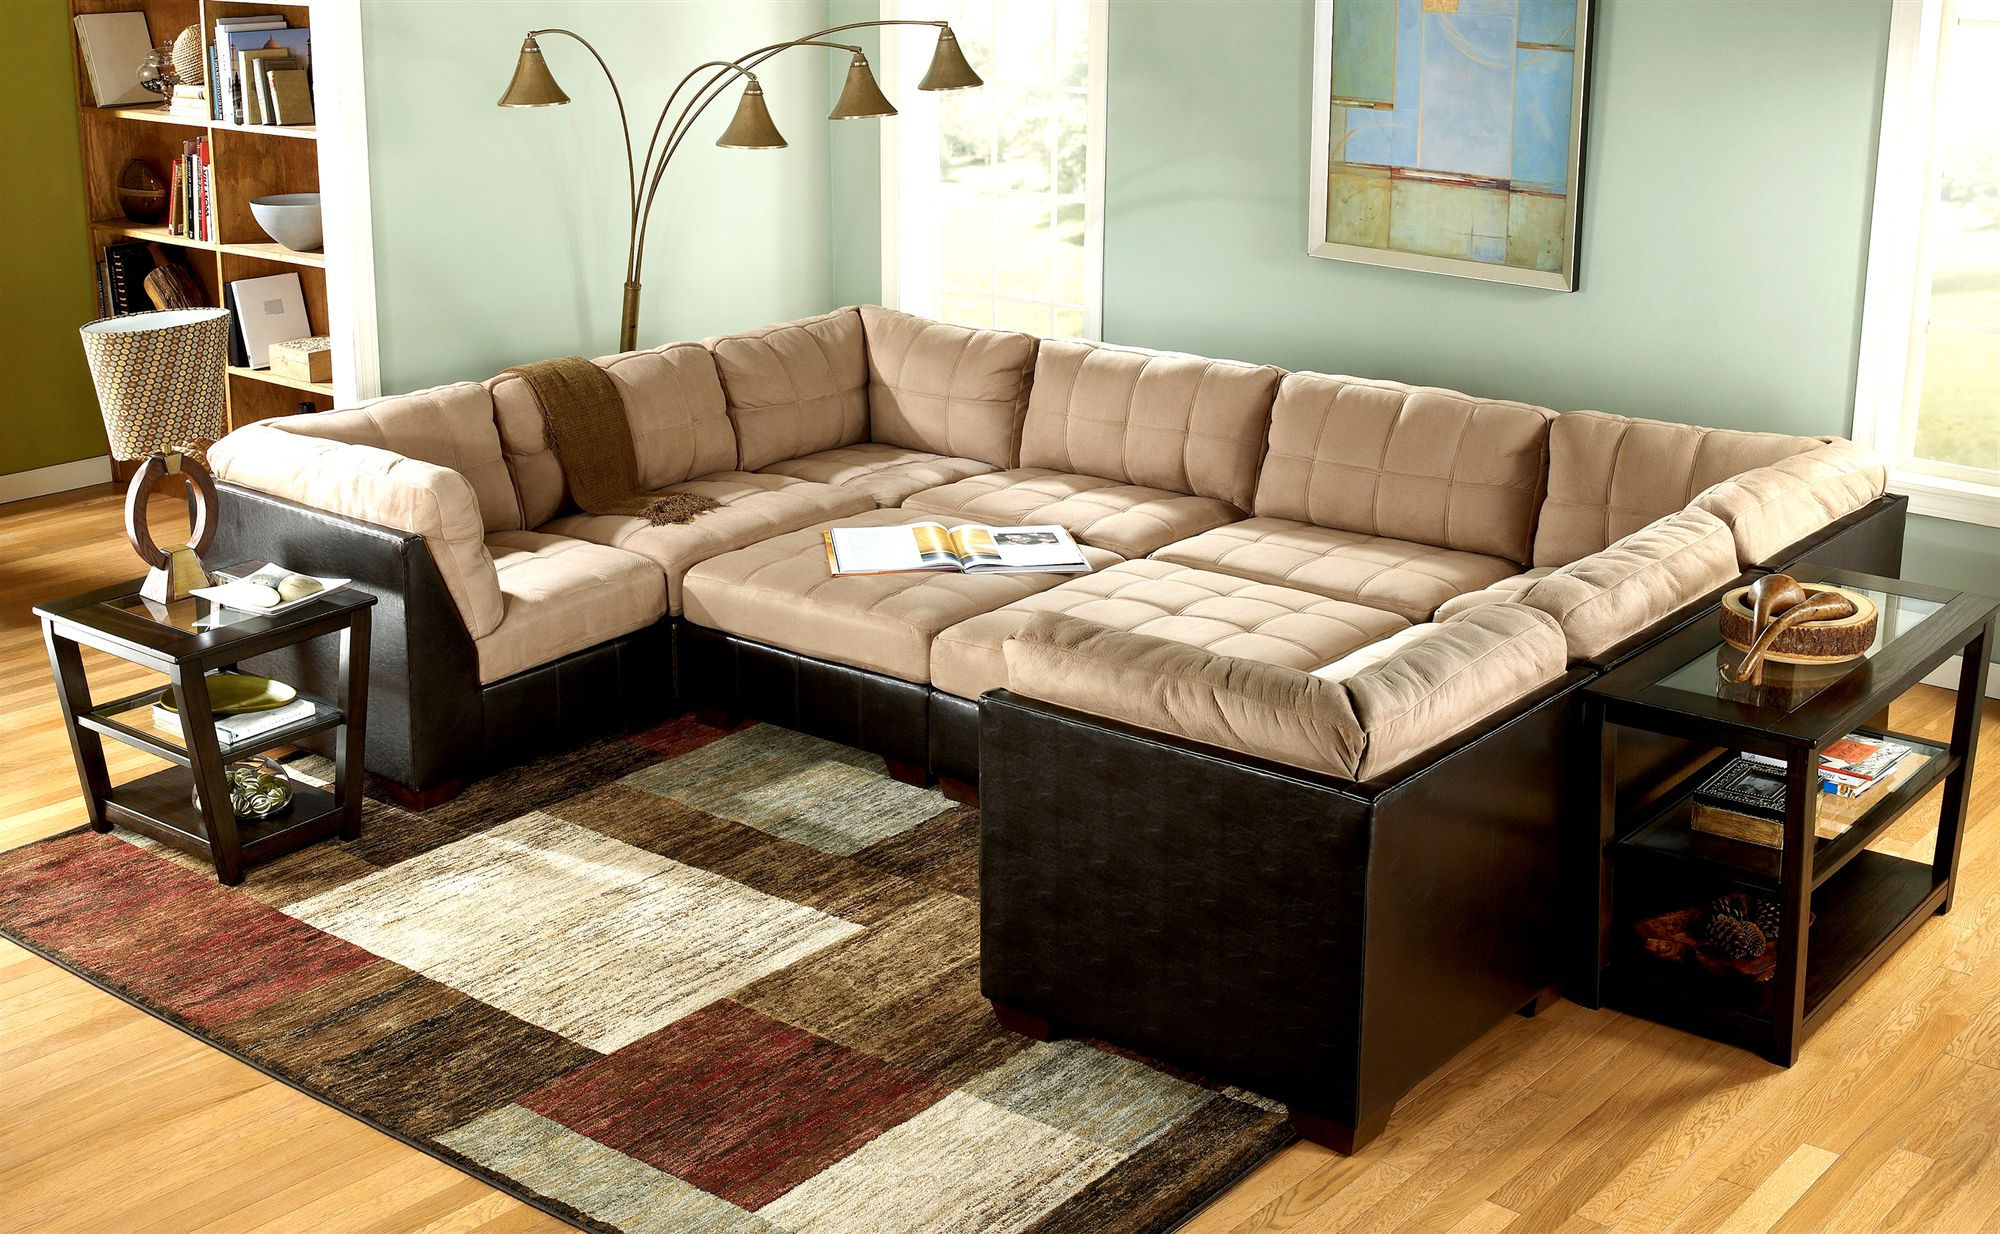 Living room ideas with sectionals sofa for small living for Family room couch ideas